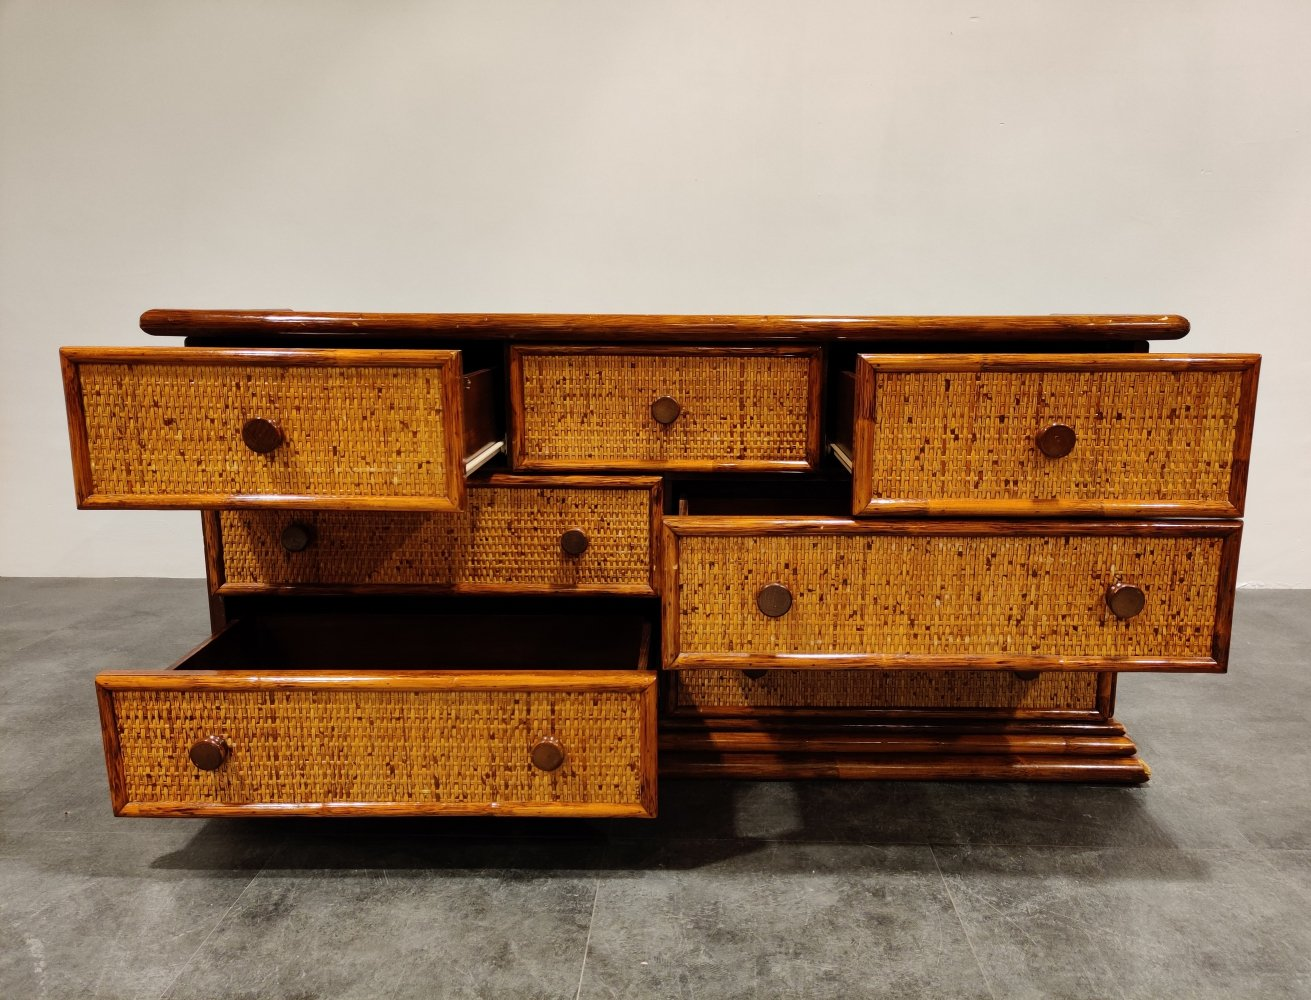 Vintage rattan chest of drawers by Maugrion, 1970s